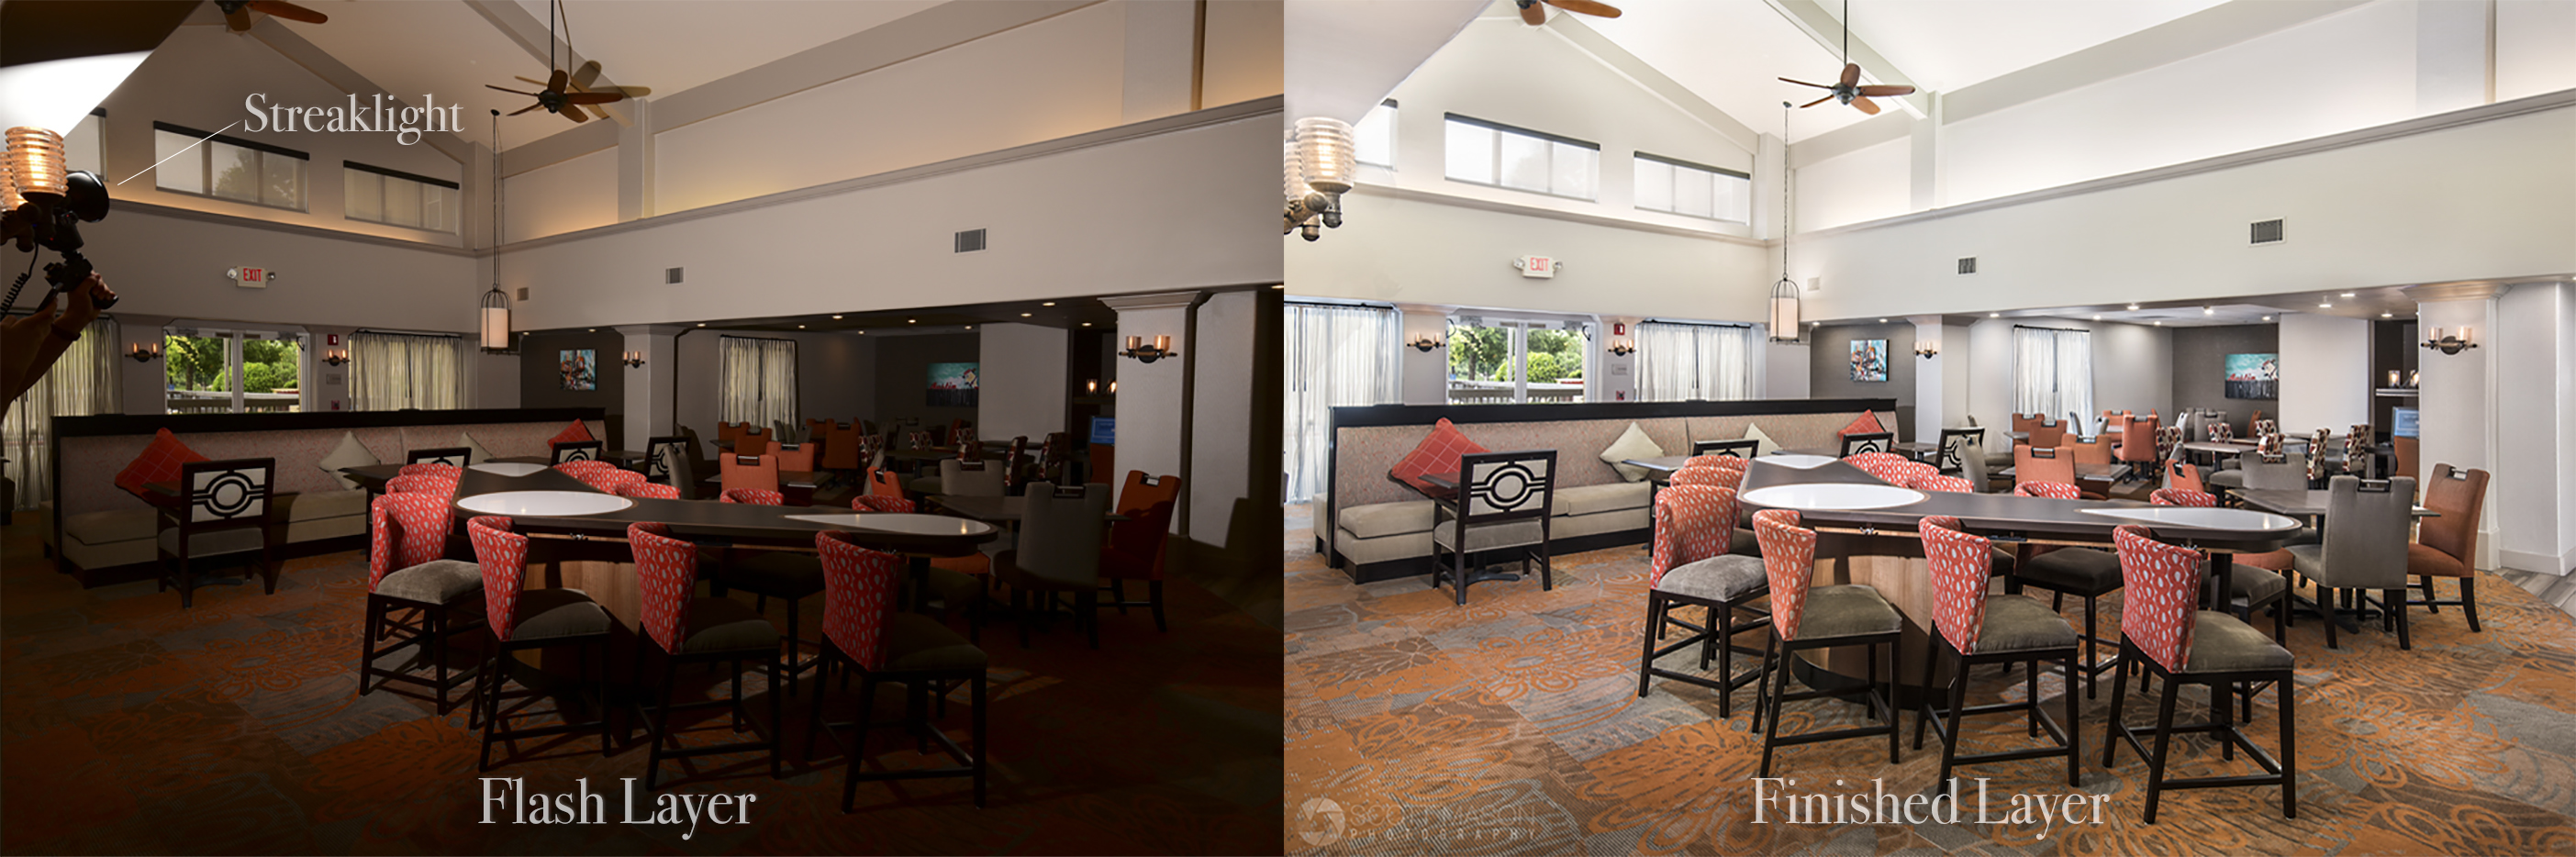 a diptych showing the process of using a Streaklight 360 flash to light a hotel dining area